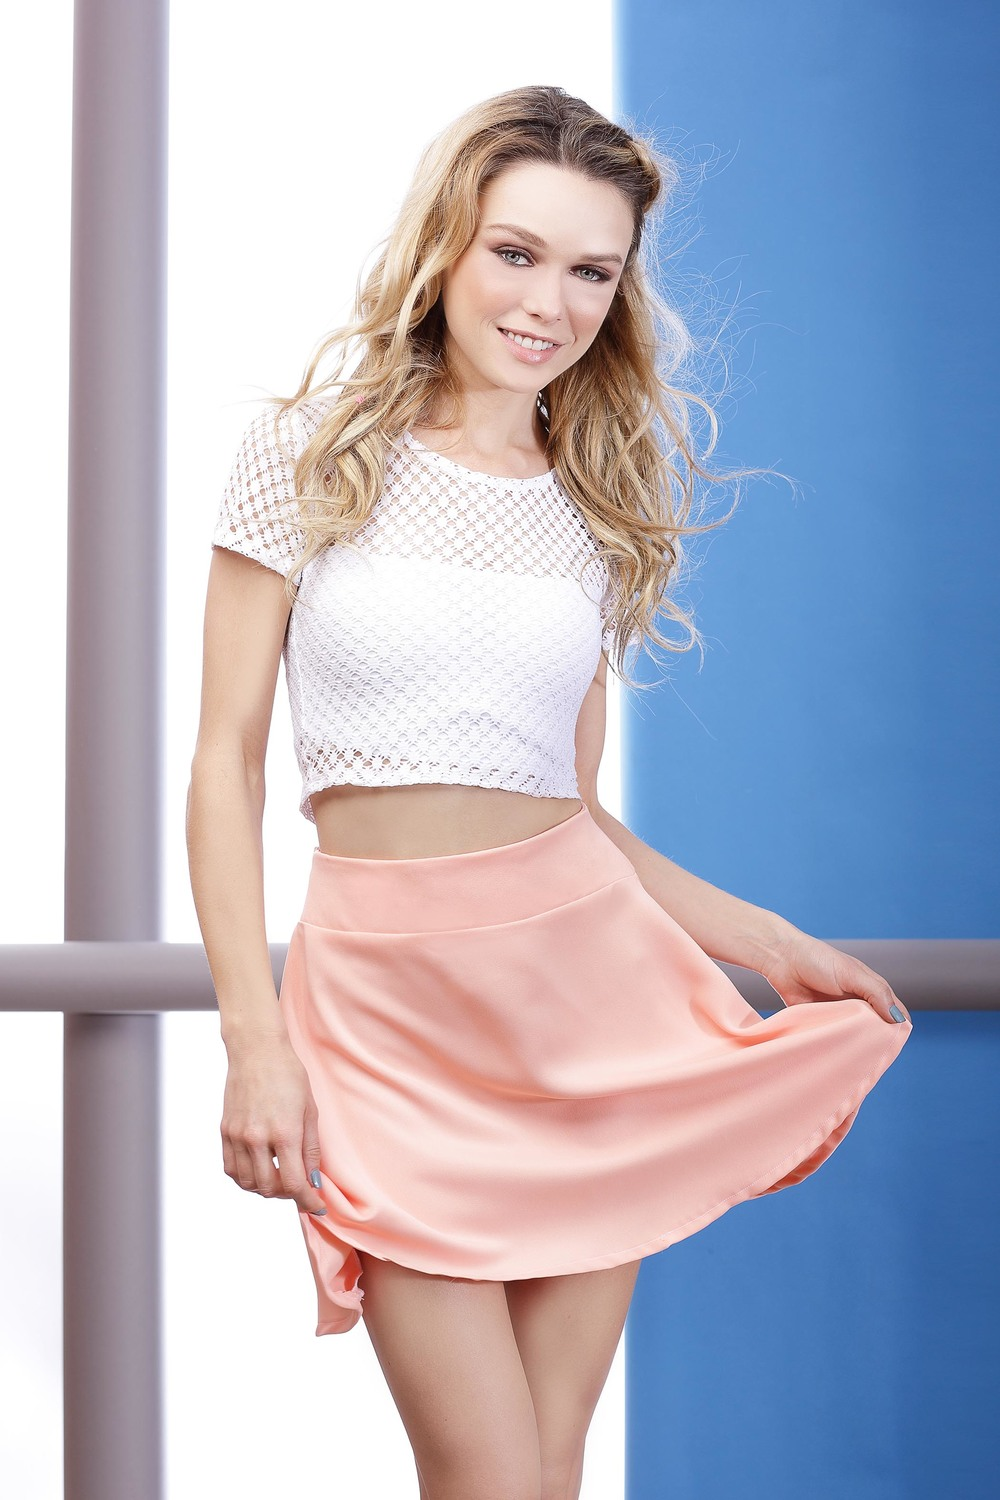 SUMMER LACE CROP TOP & PEACH WAVE SKIRT